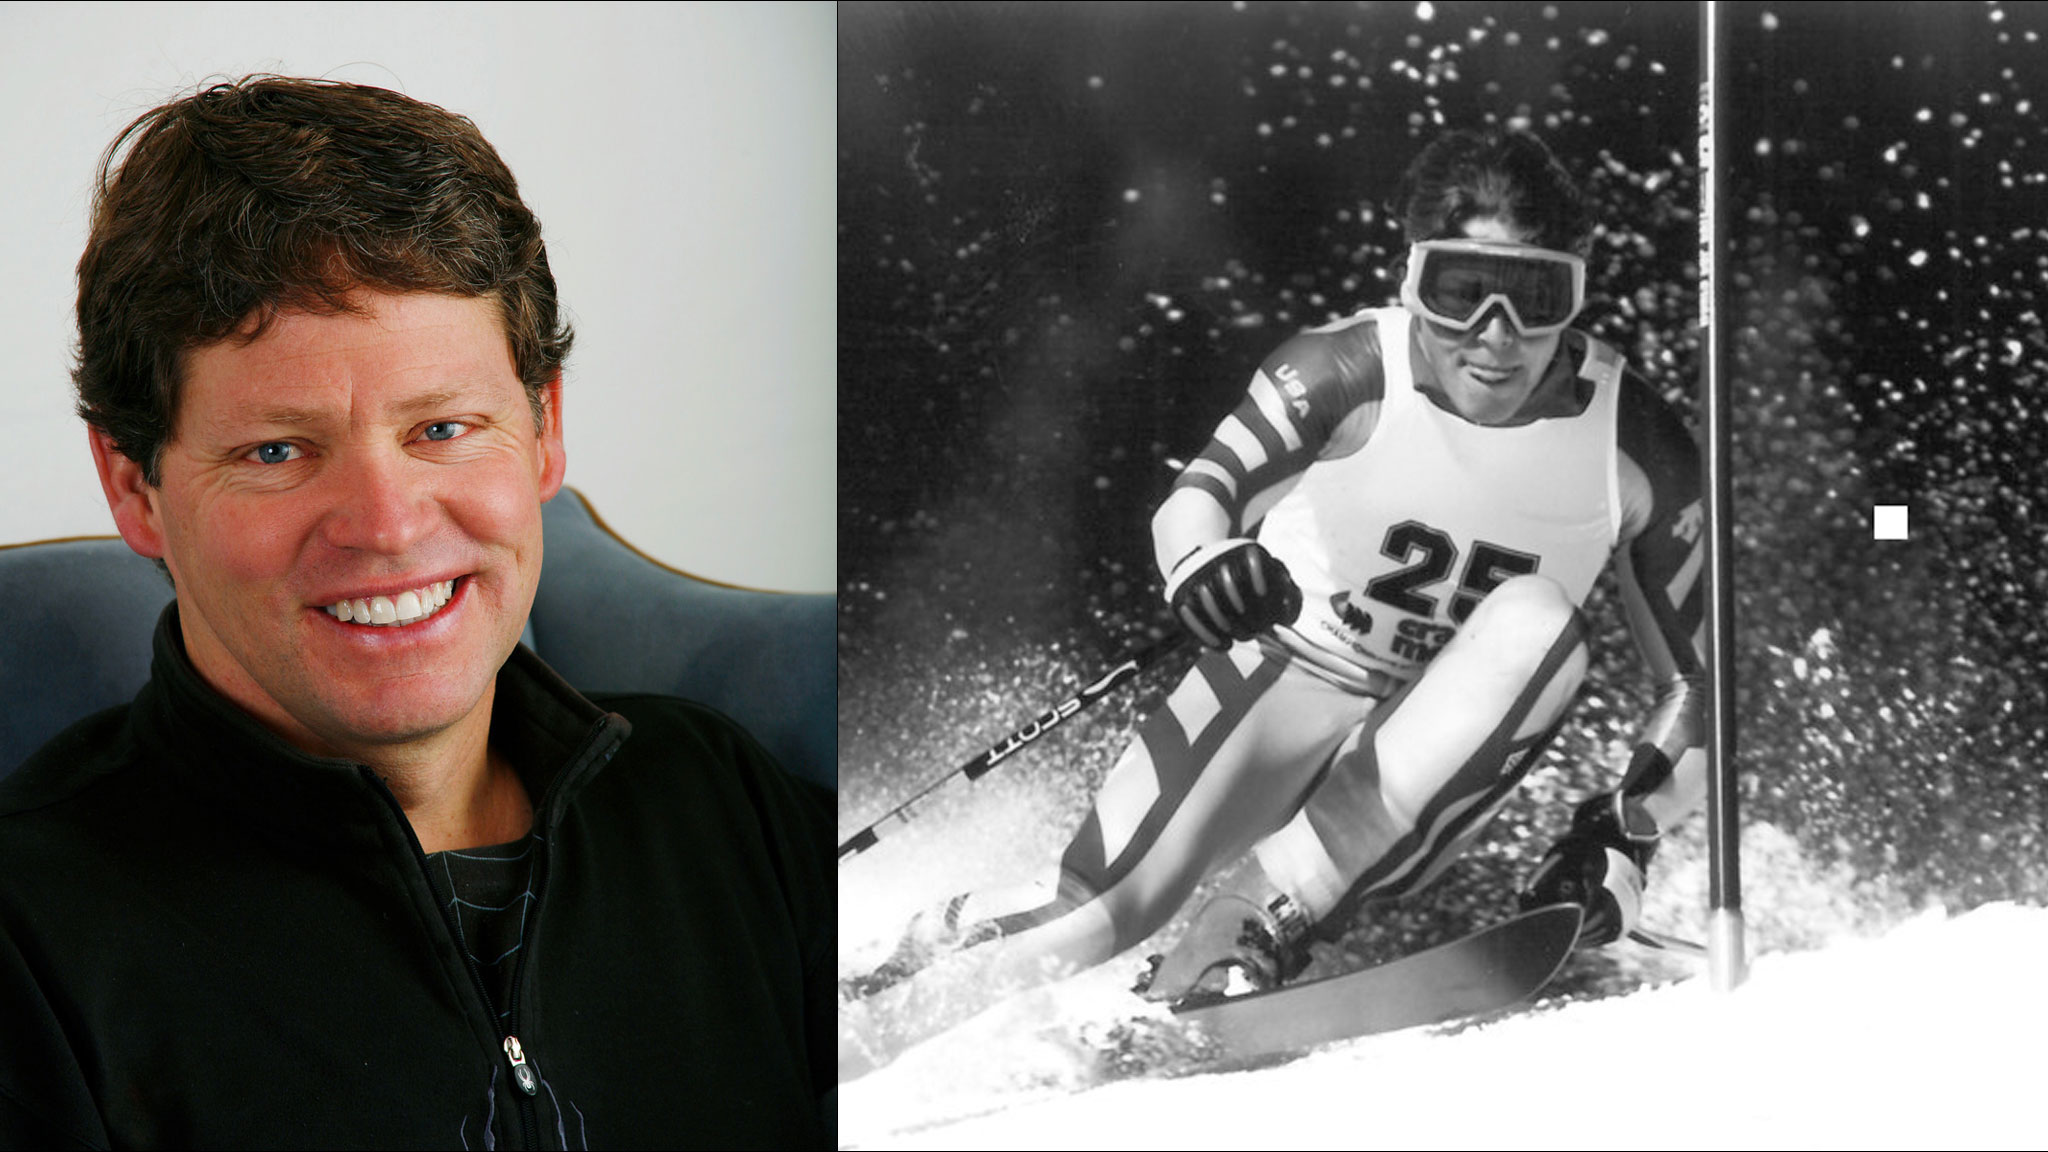 Former Olympic alpine ski racer Tiger Shaw has been named the new CEO of USSA.